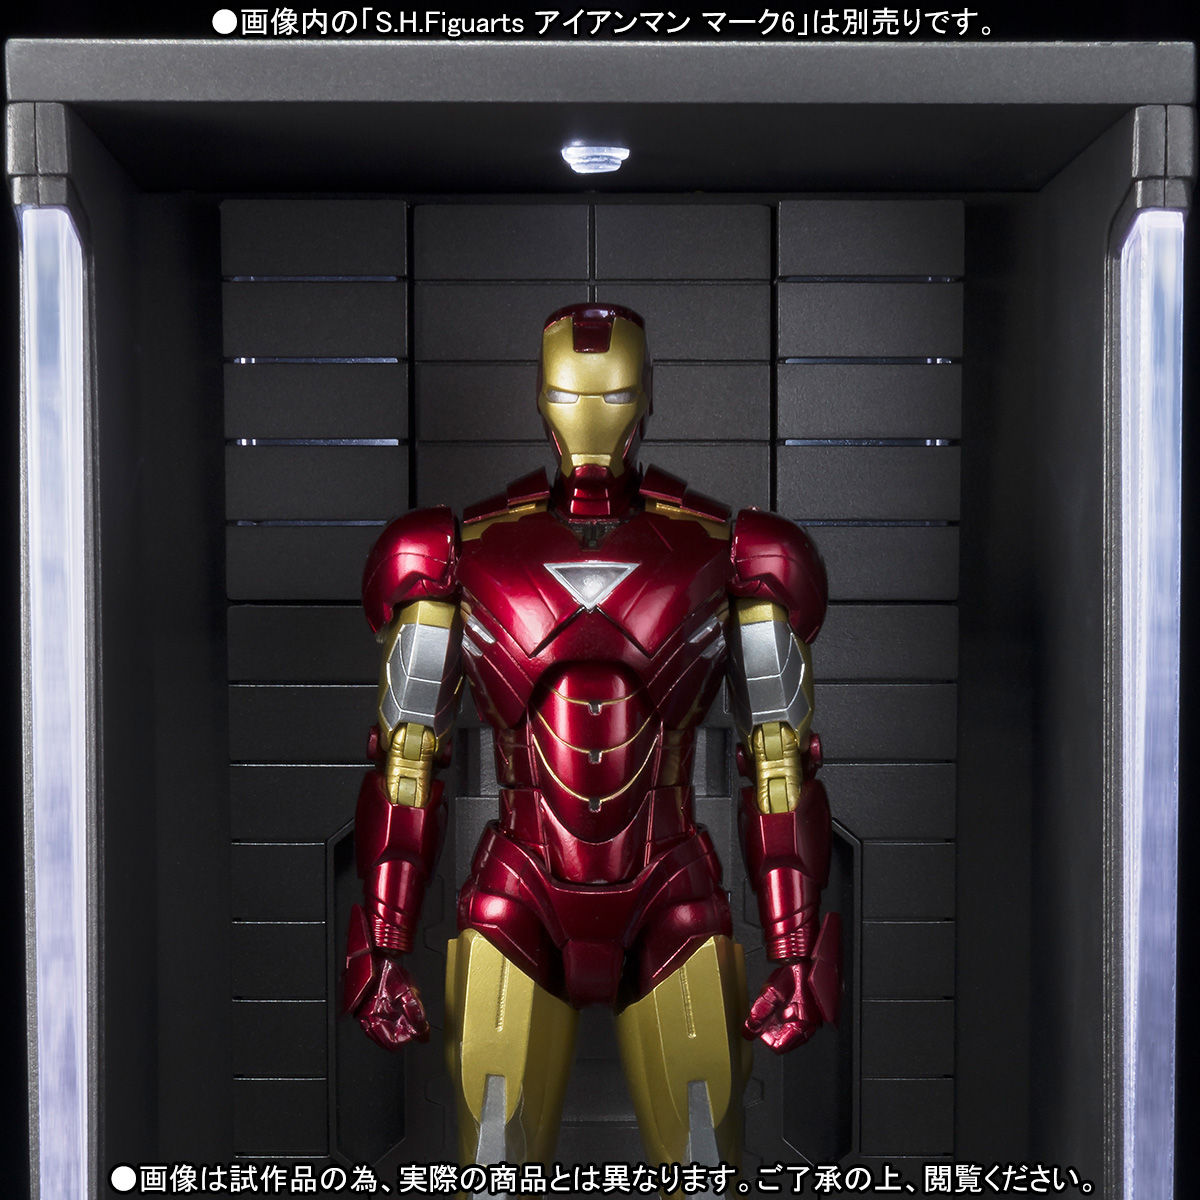 S.H.Figuarts - Hall of Armor(Pre-order)